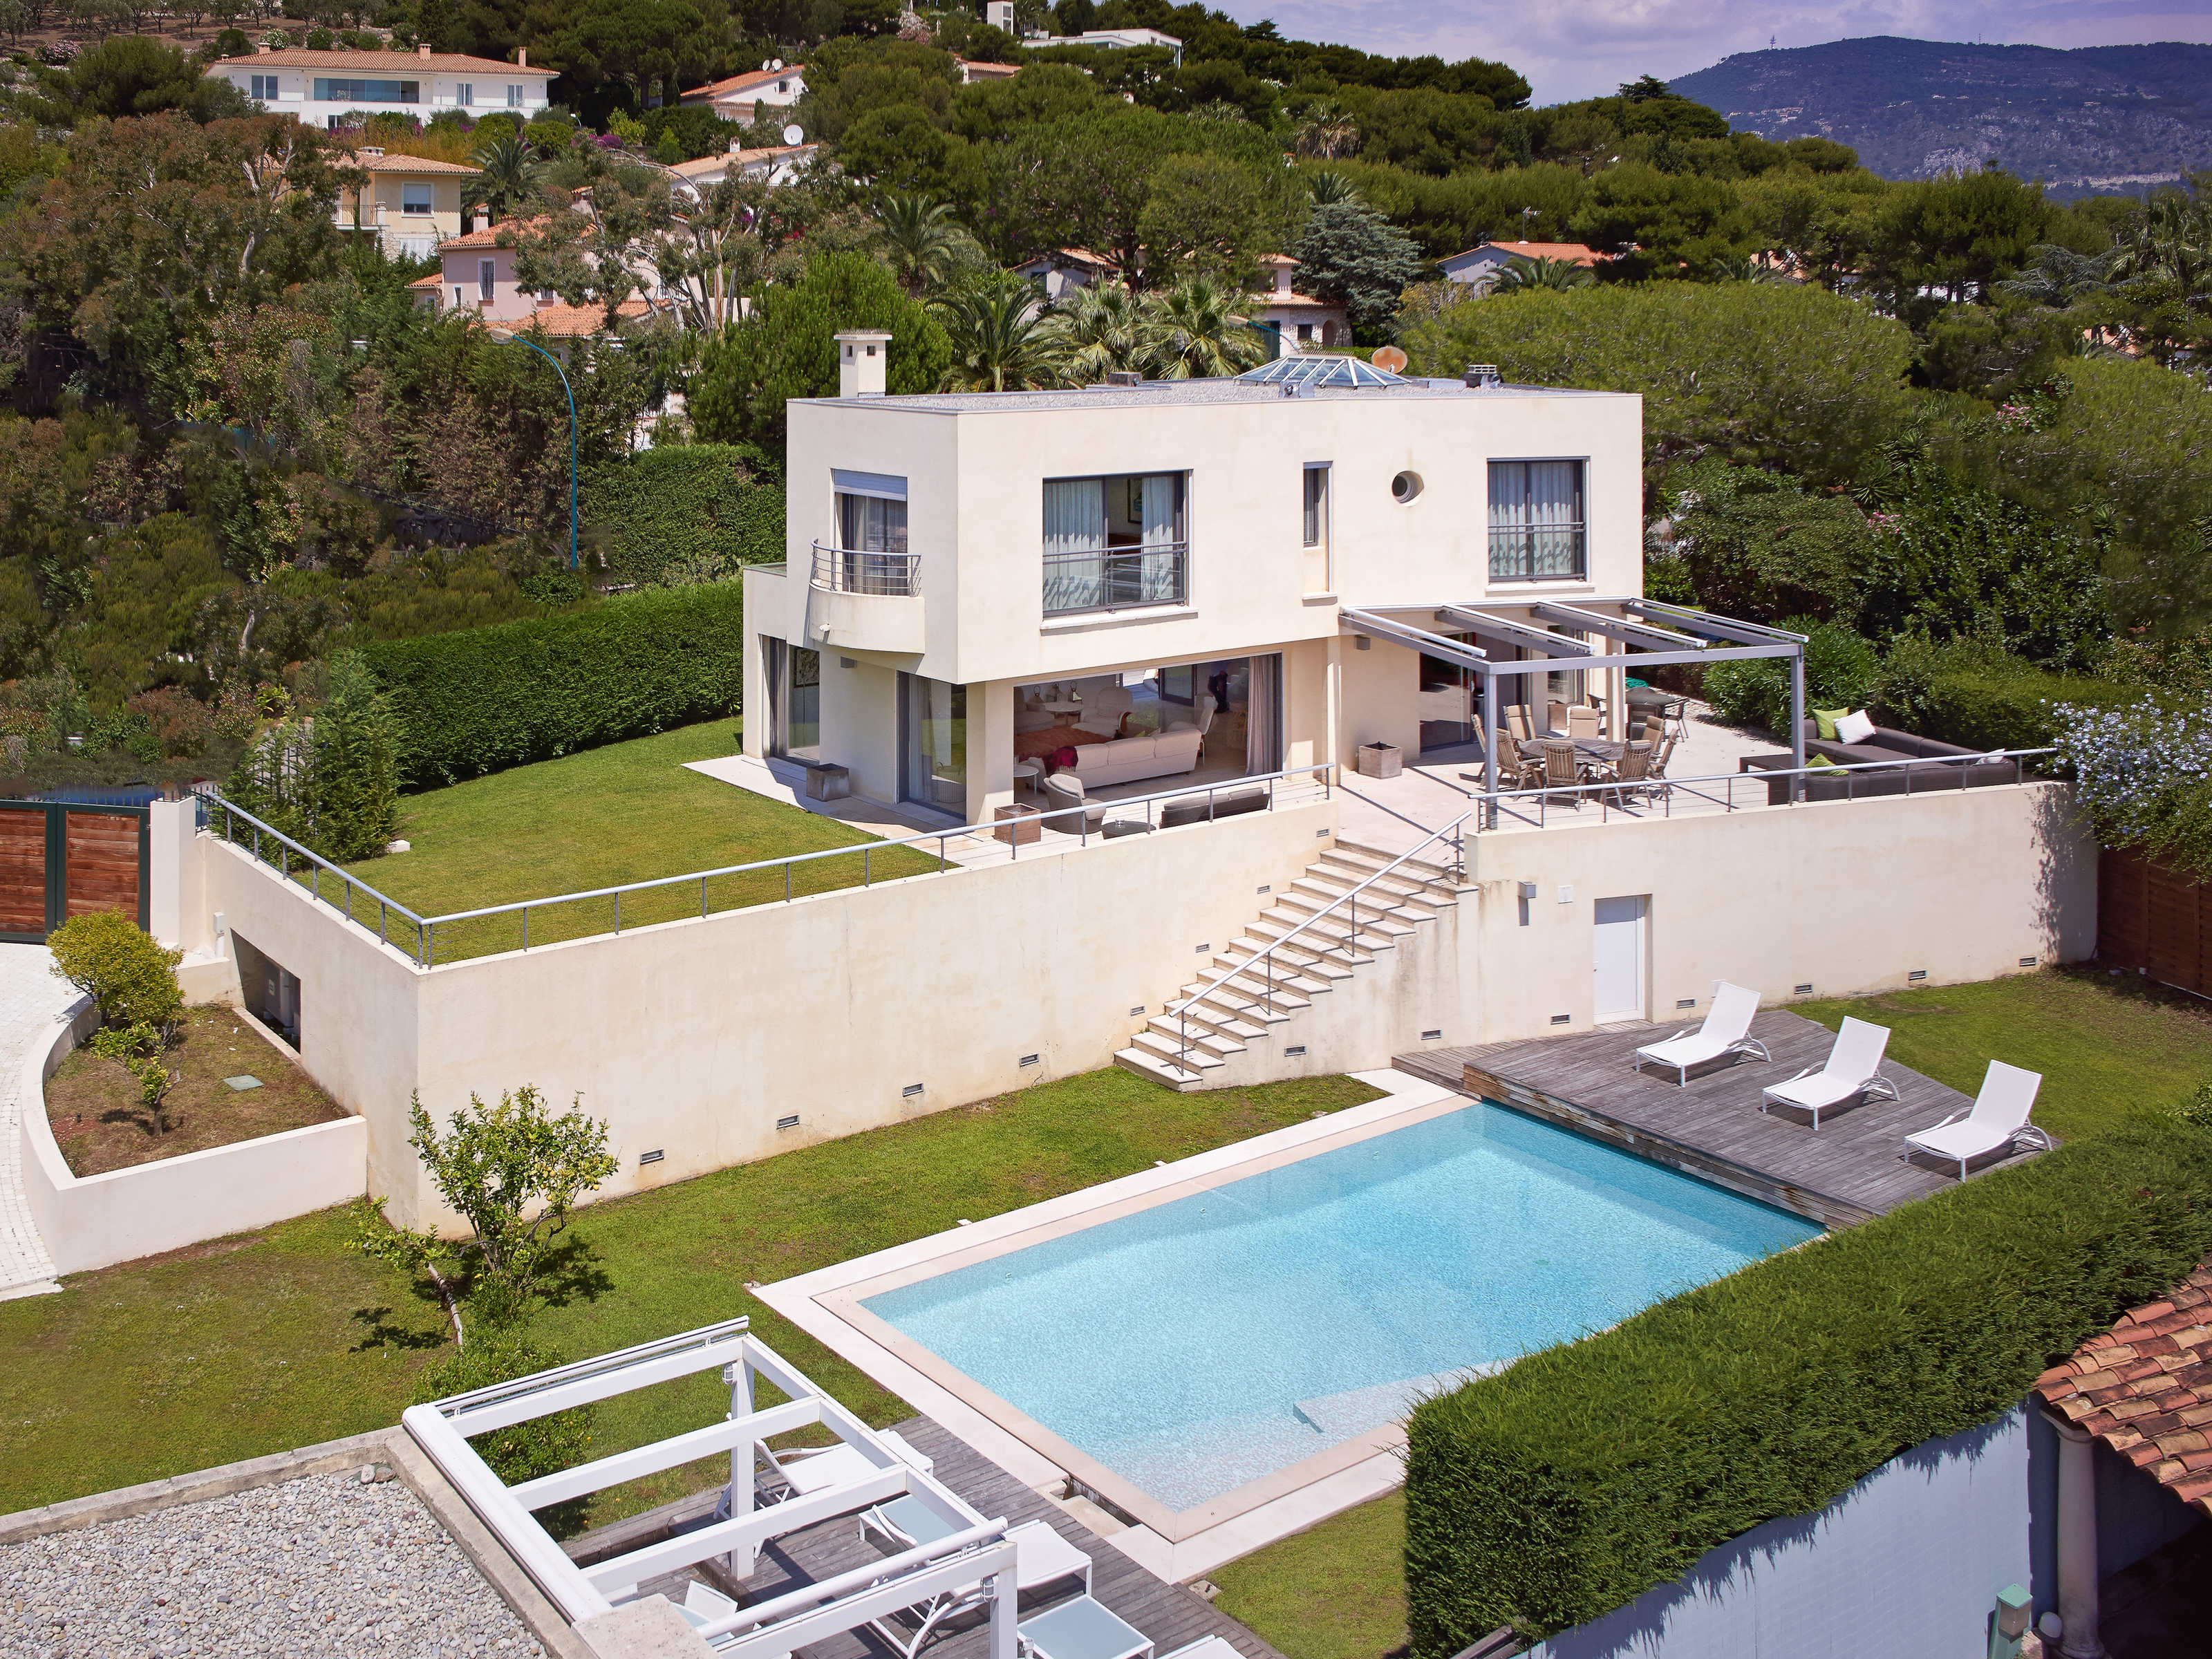 Single Family Home for Sale at Contemporary Villa in the Heart of St Jean Cap Ferrat Saint Jean Cap Ferrat Saint Jean Cap Ferrat, Provence-Alpes-Cote D'Azur 06230 France